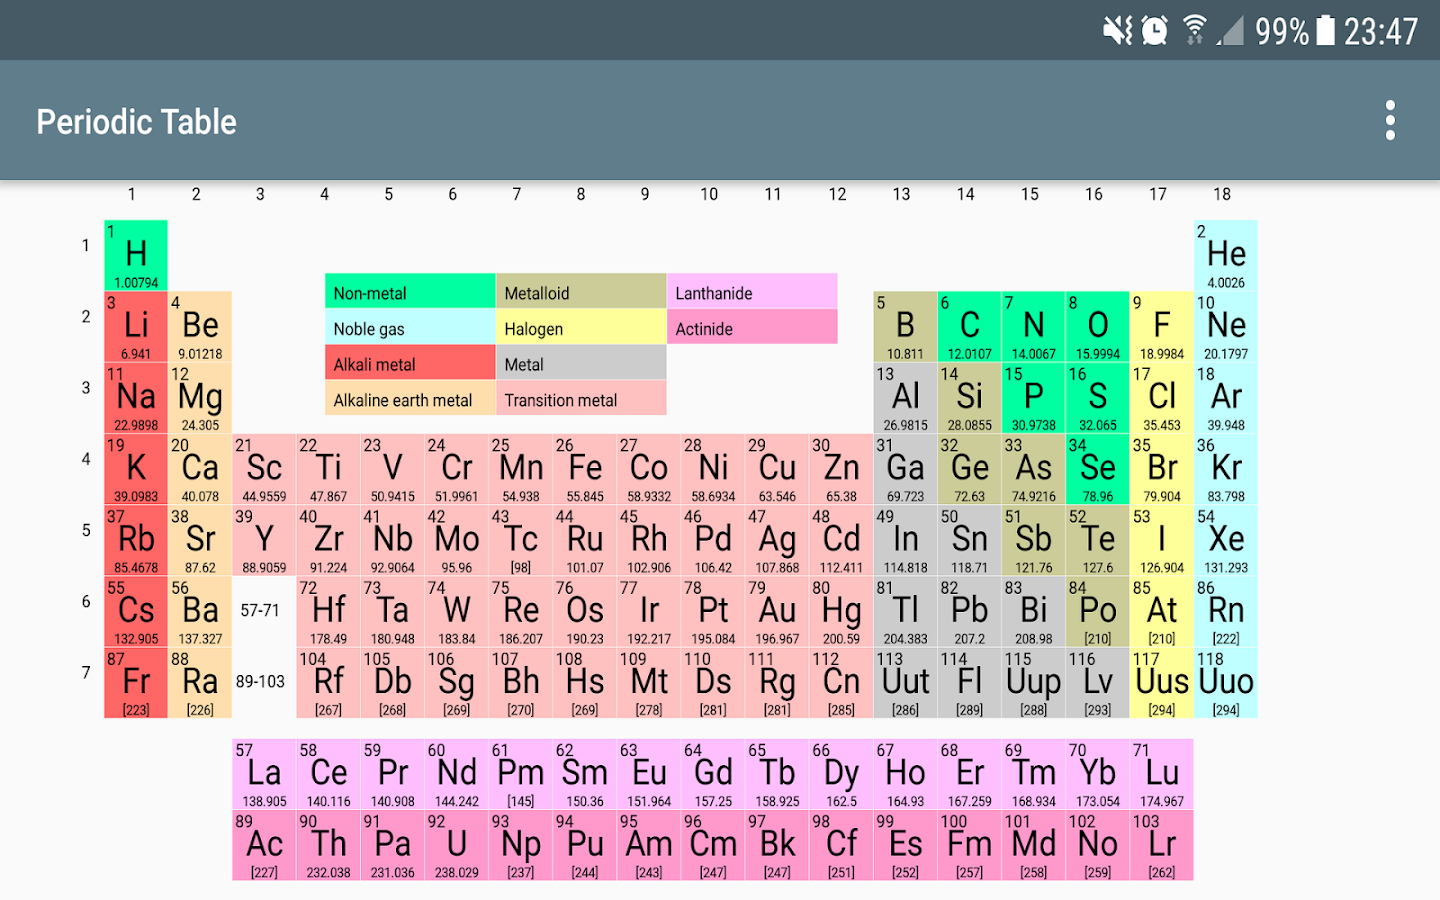 Periodic table picture download gallery periodic table images periodic table picture download image collections periodic table periodic table picture download gallery periodic table images gamestrikefo Image collections